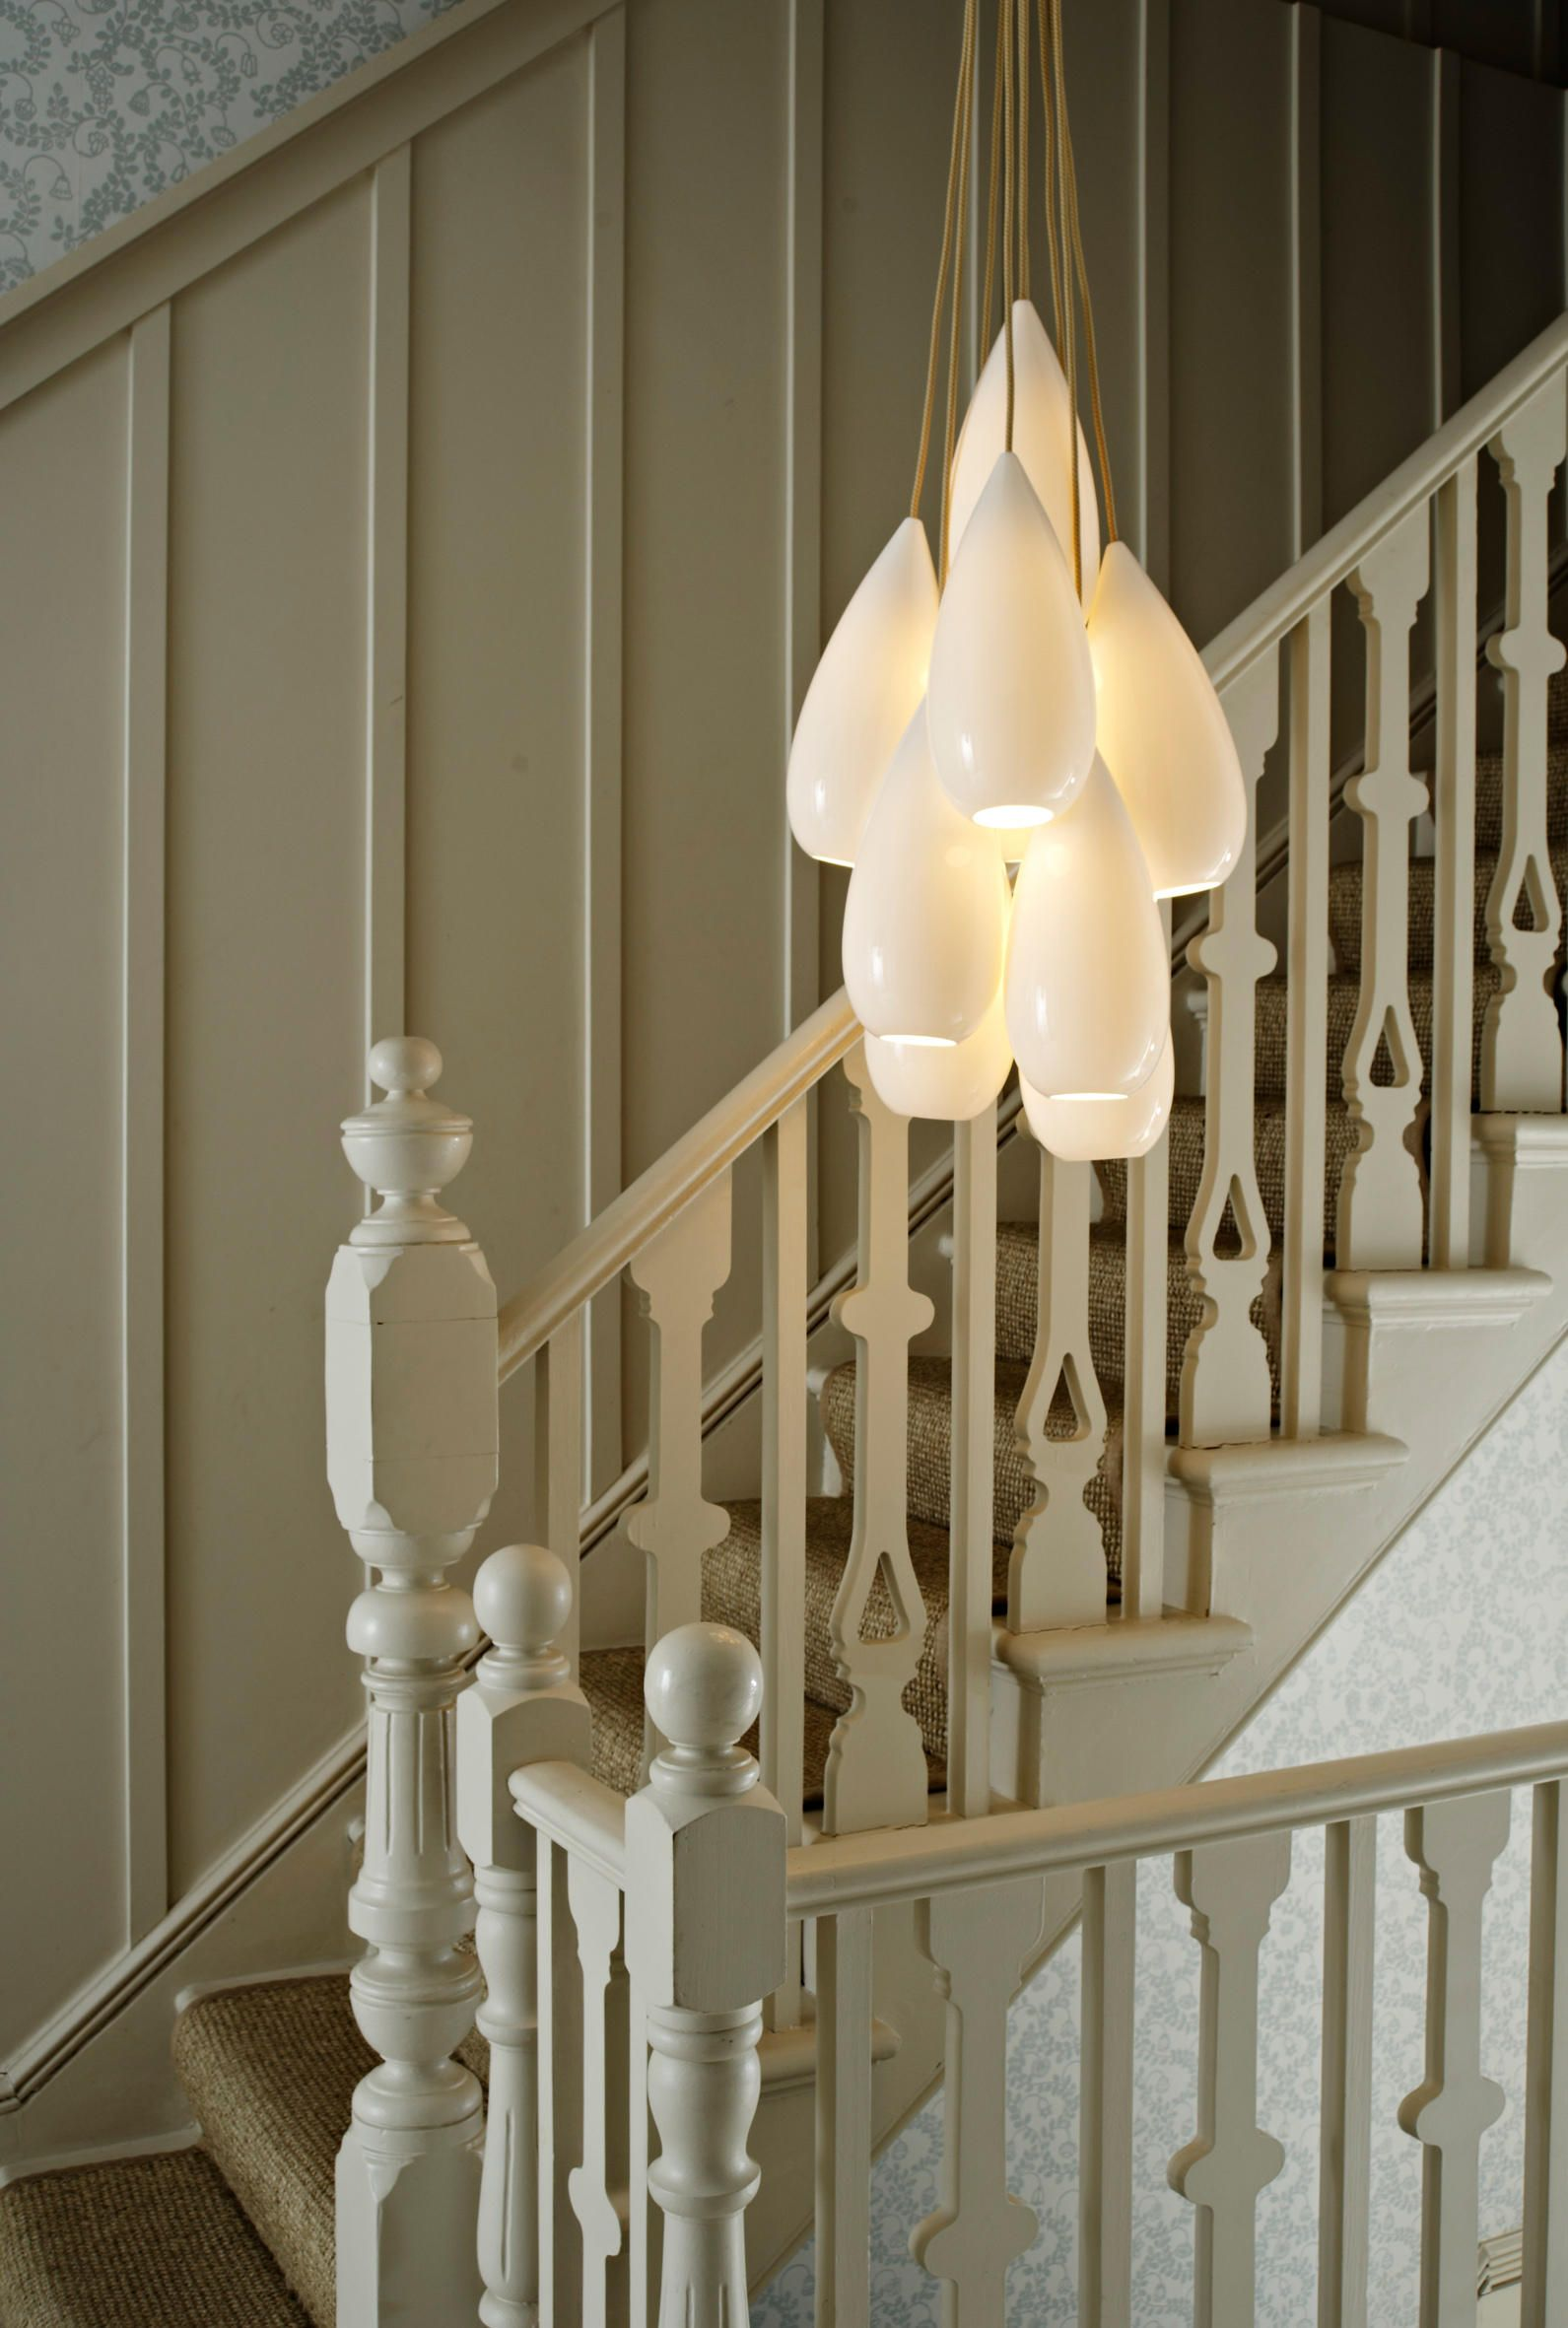 A Chandelier Gives Lovely Atmospheric Warmth Providing Relaxed Feel To Any Room Here An Original BTC Drop Zero Hangs Above Staircase